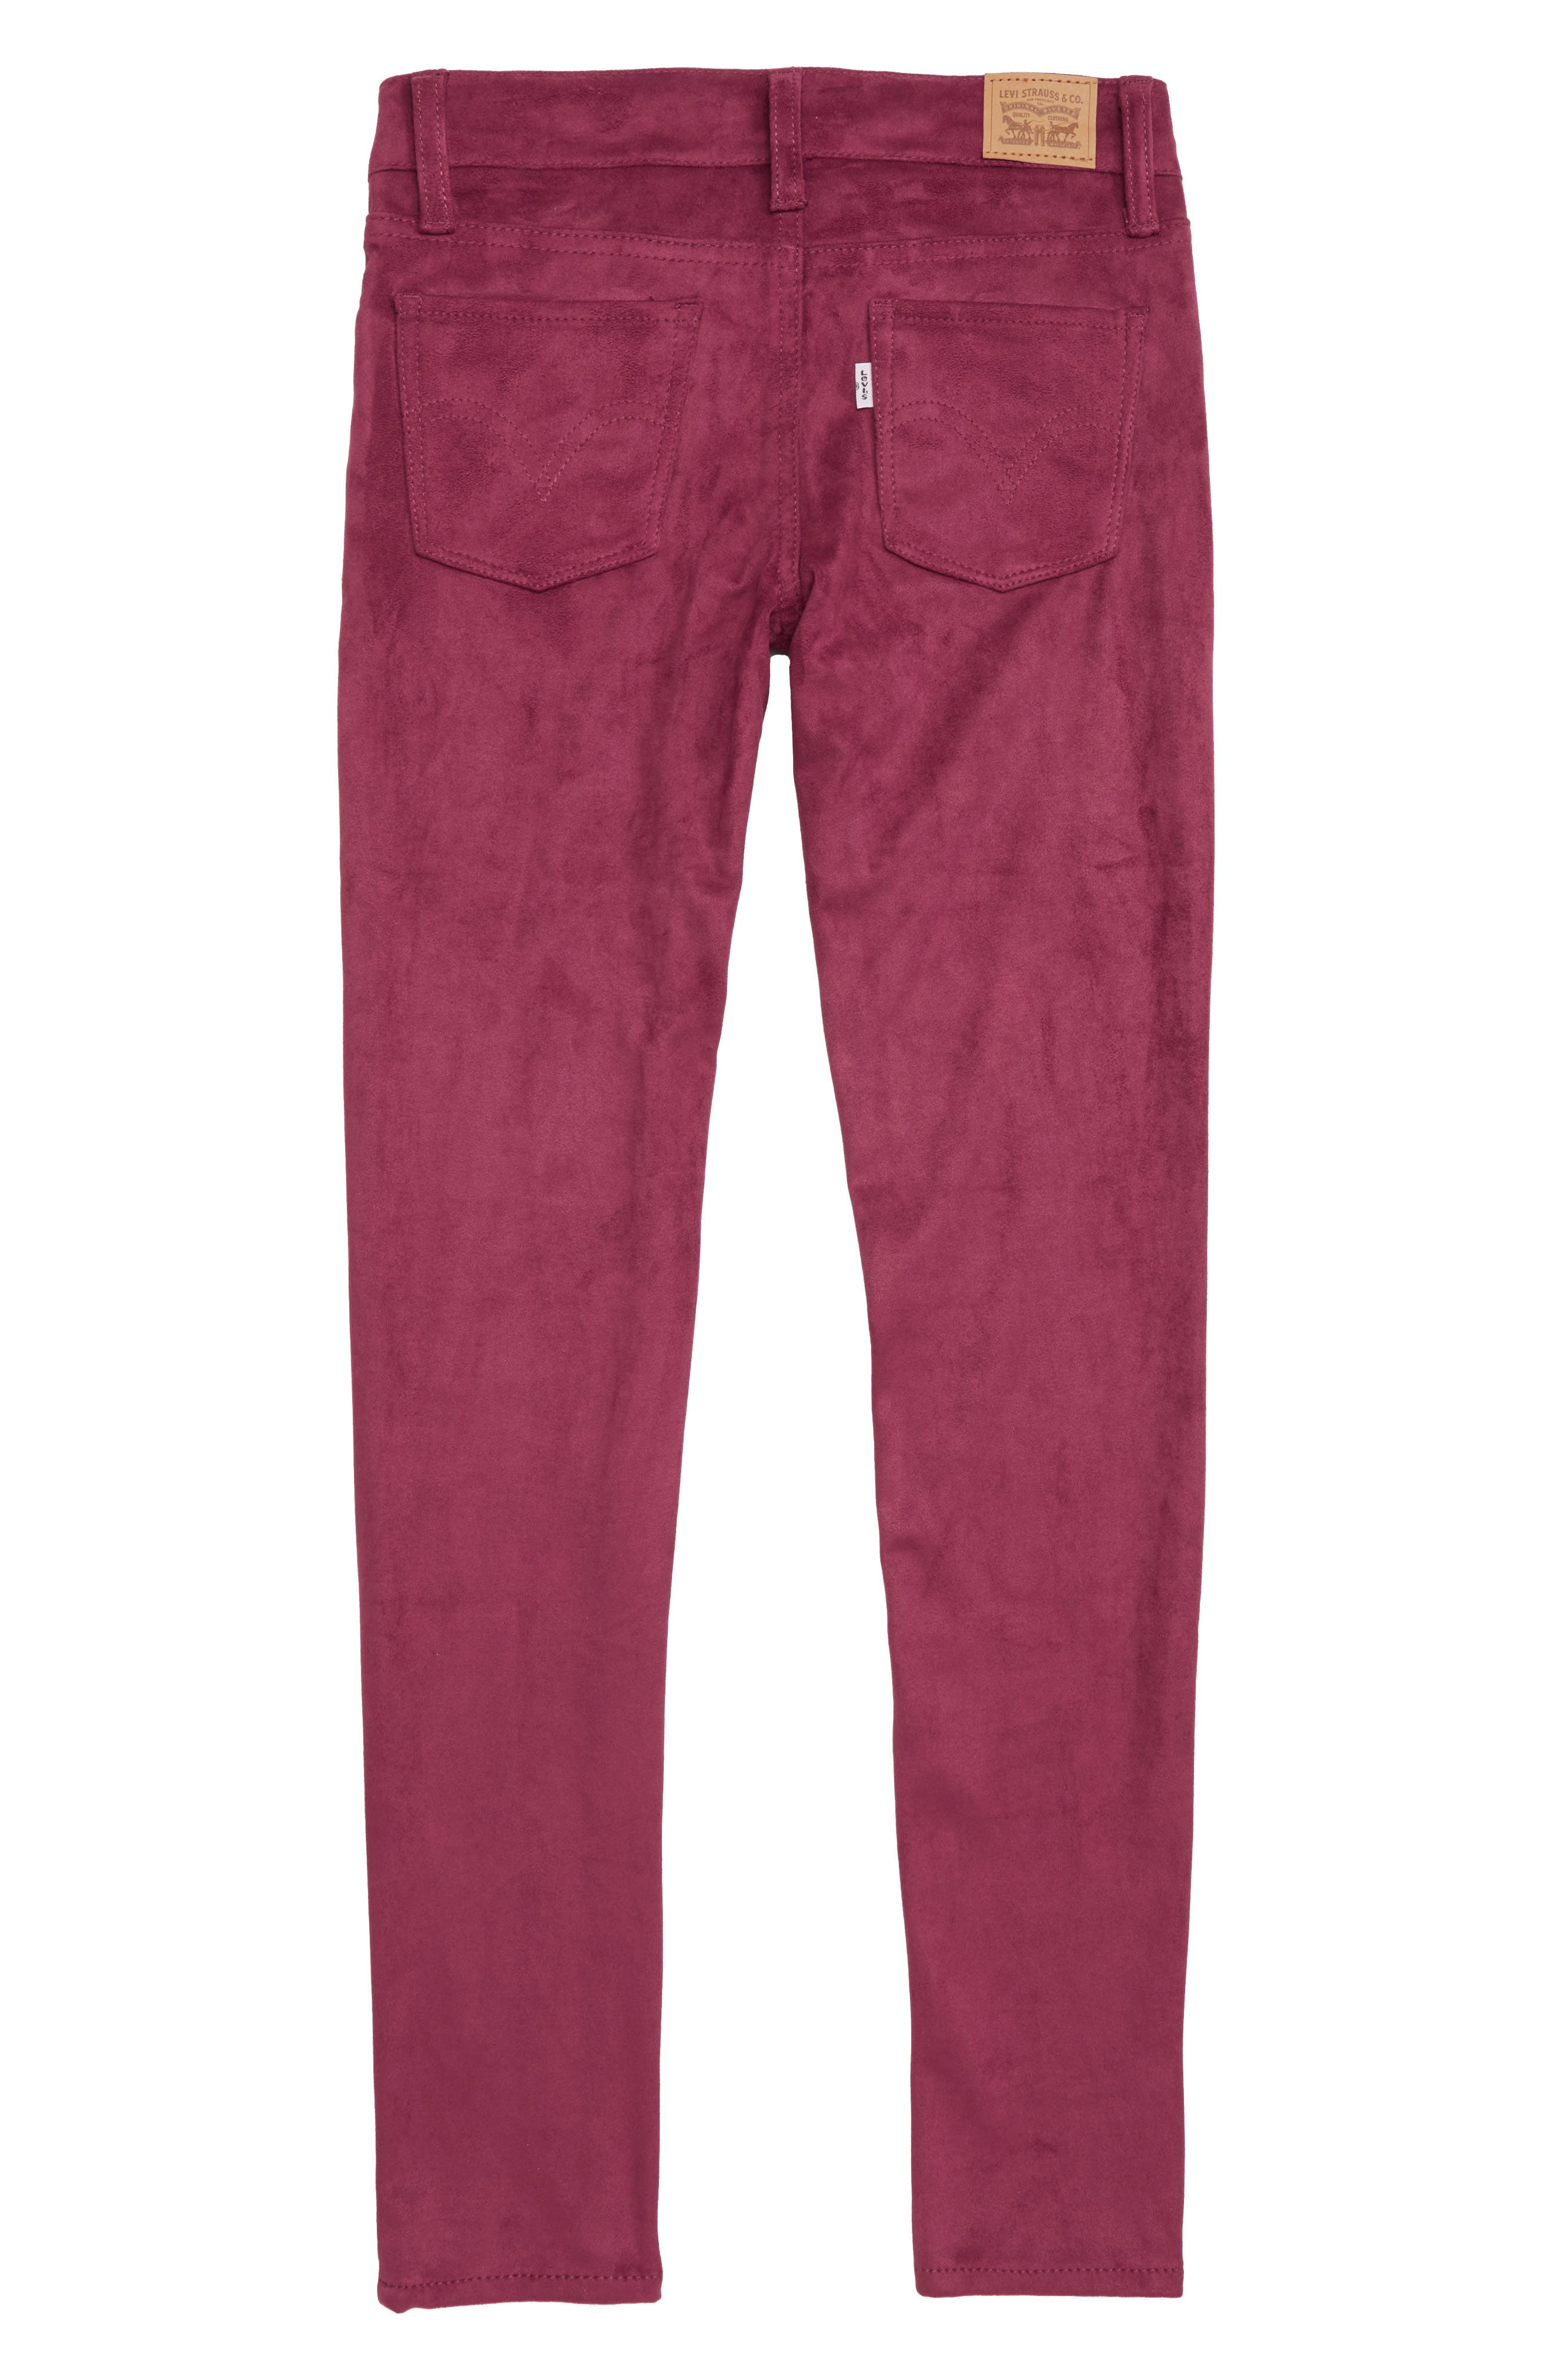 710<sup>™</sup> Super Skinny Faux Suede Jeans,                             Alternate thumbnail 2, color,                             BEET RED